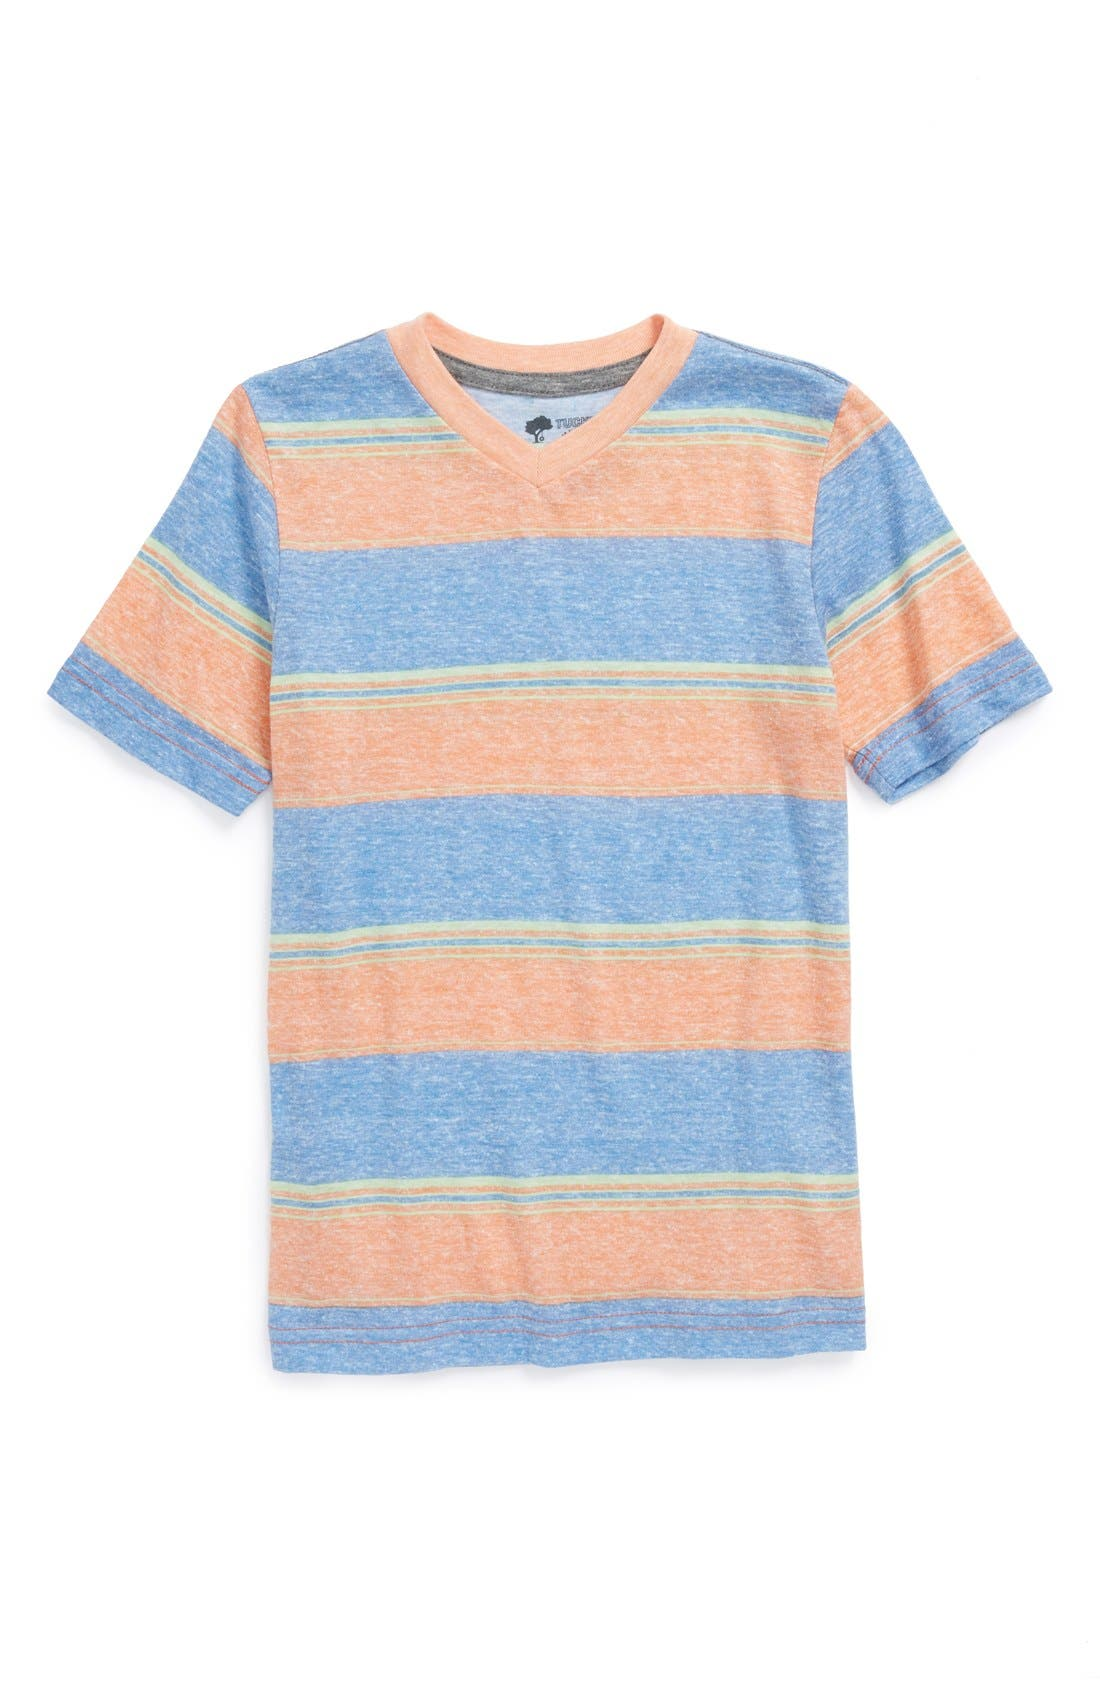 Alternate Image 1 Selected - Tucker + Tate 'Wallace' V-Neck T-Shirt (Toddler Boys)